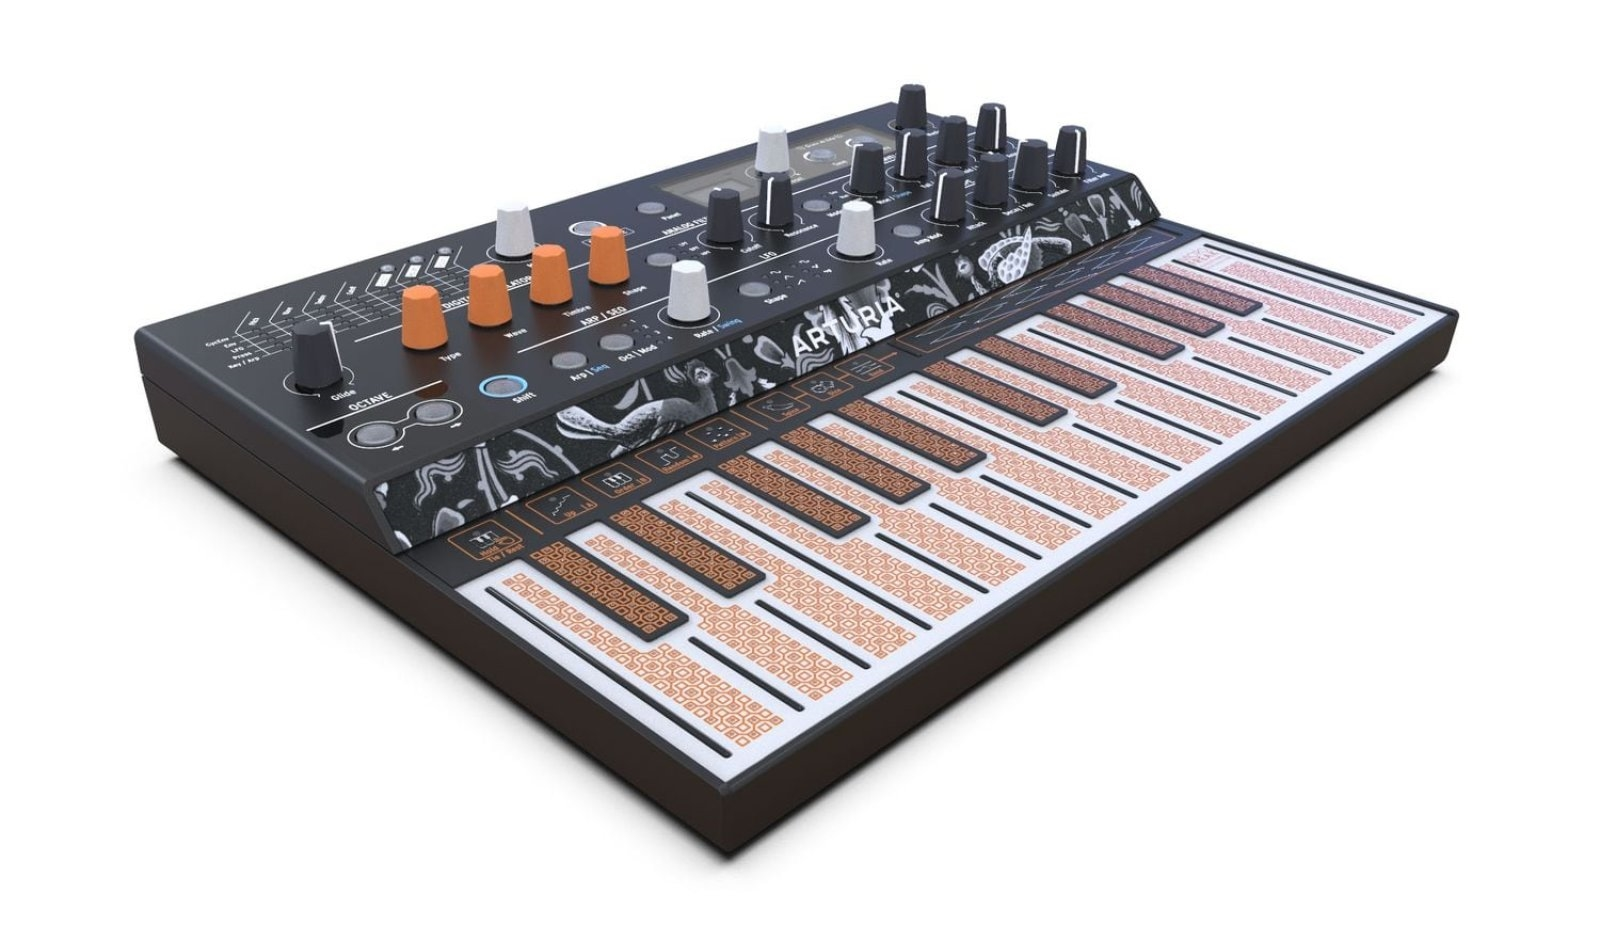 Arturia's MicroFreak is an affordable synth that lives up to its name | DeviceDaily.com